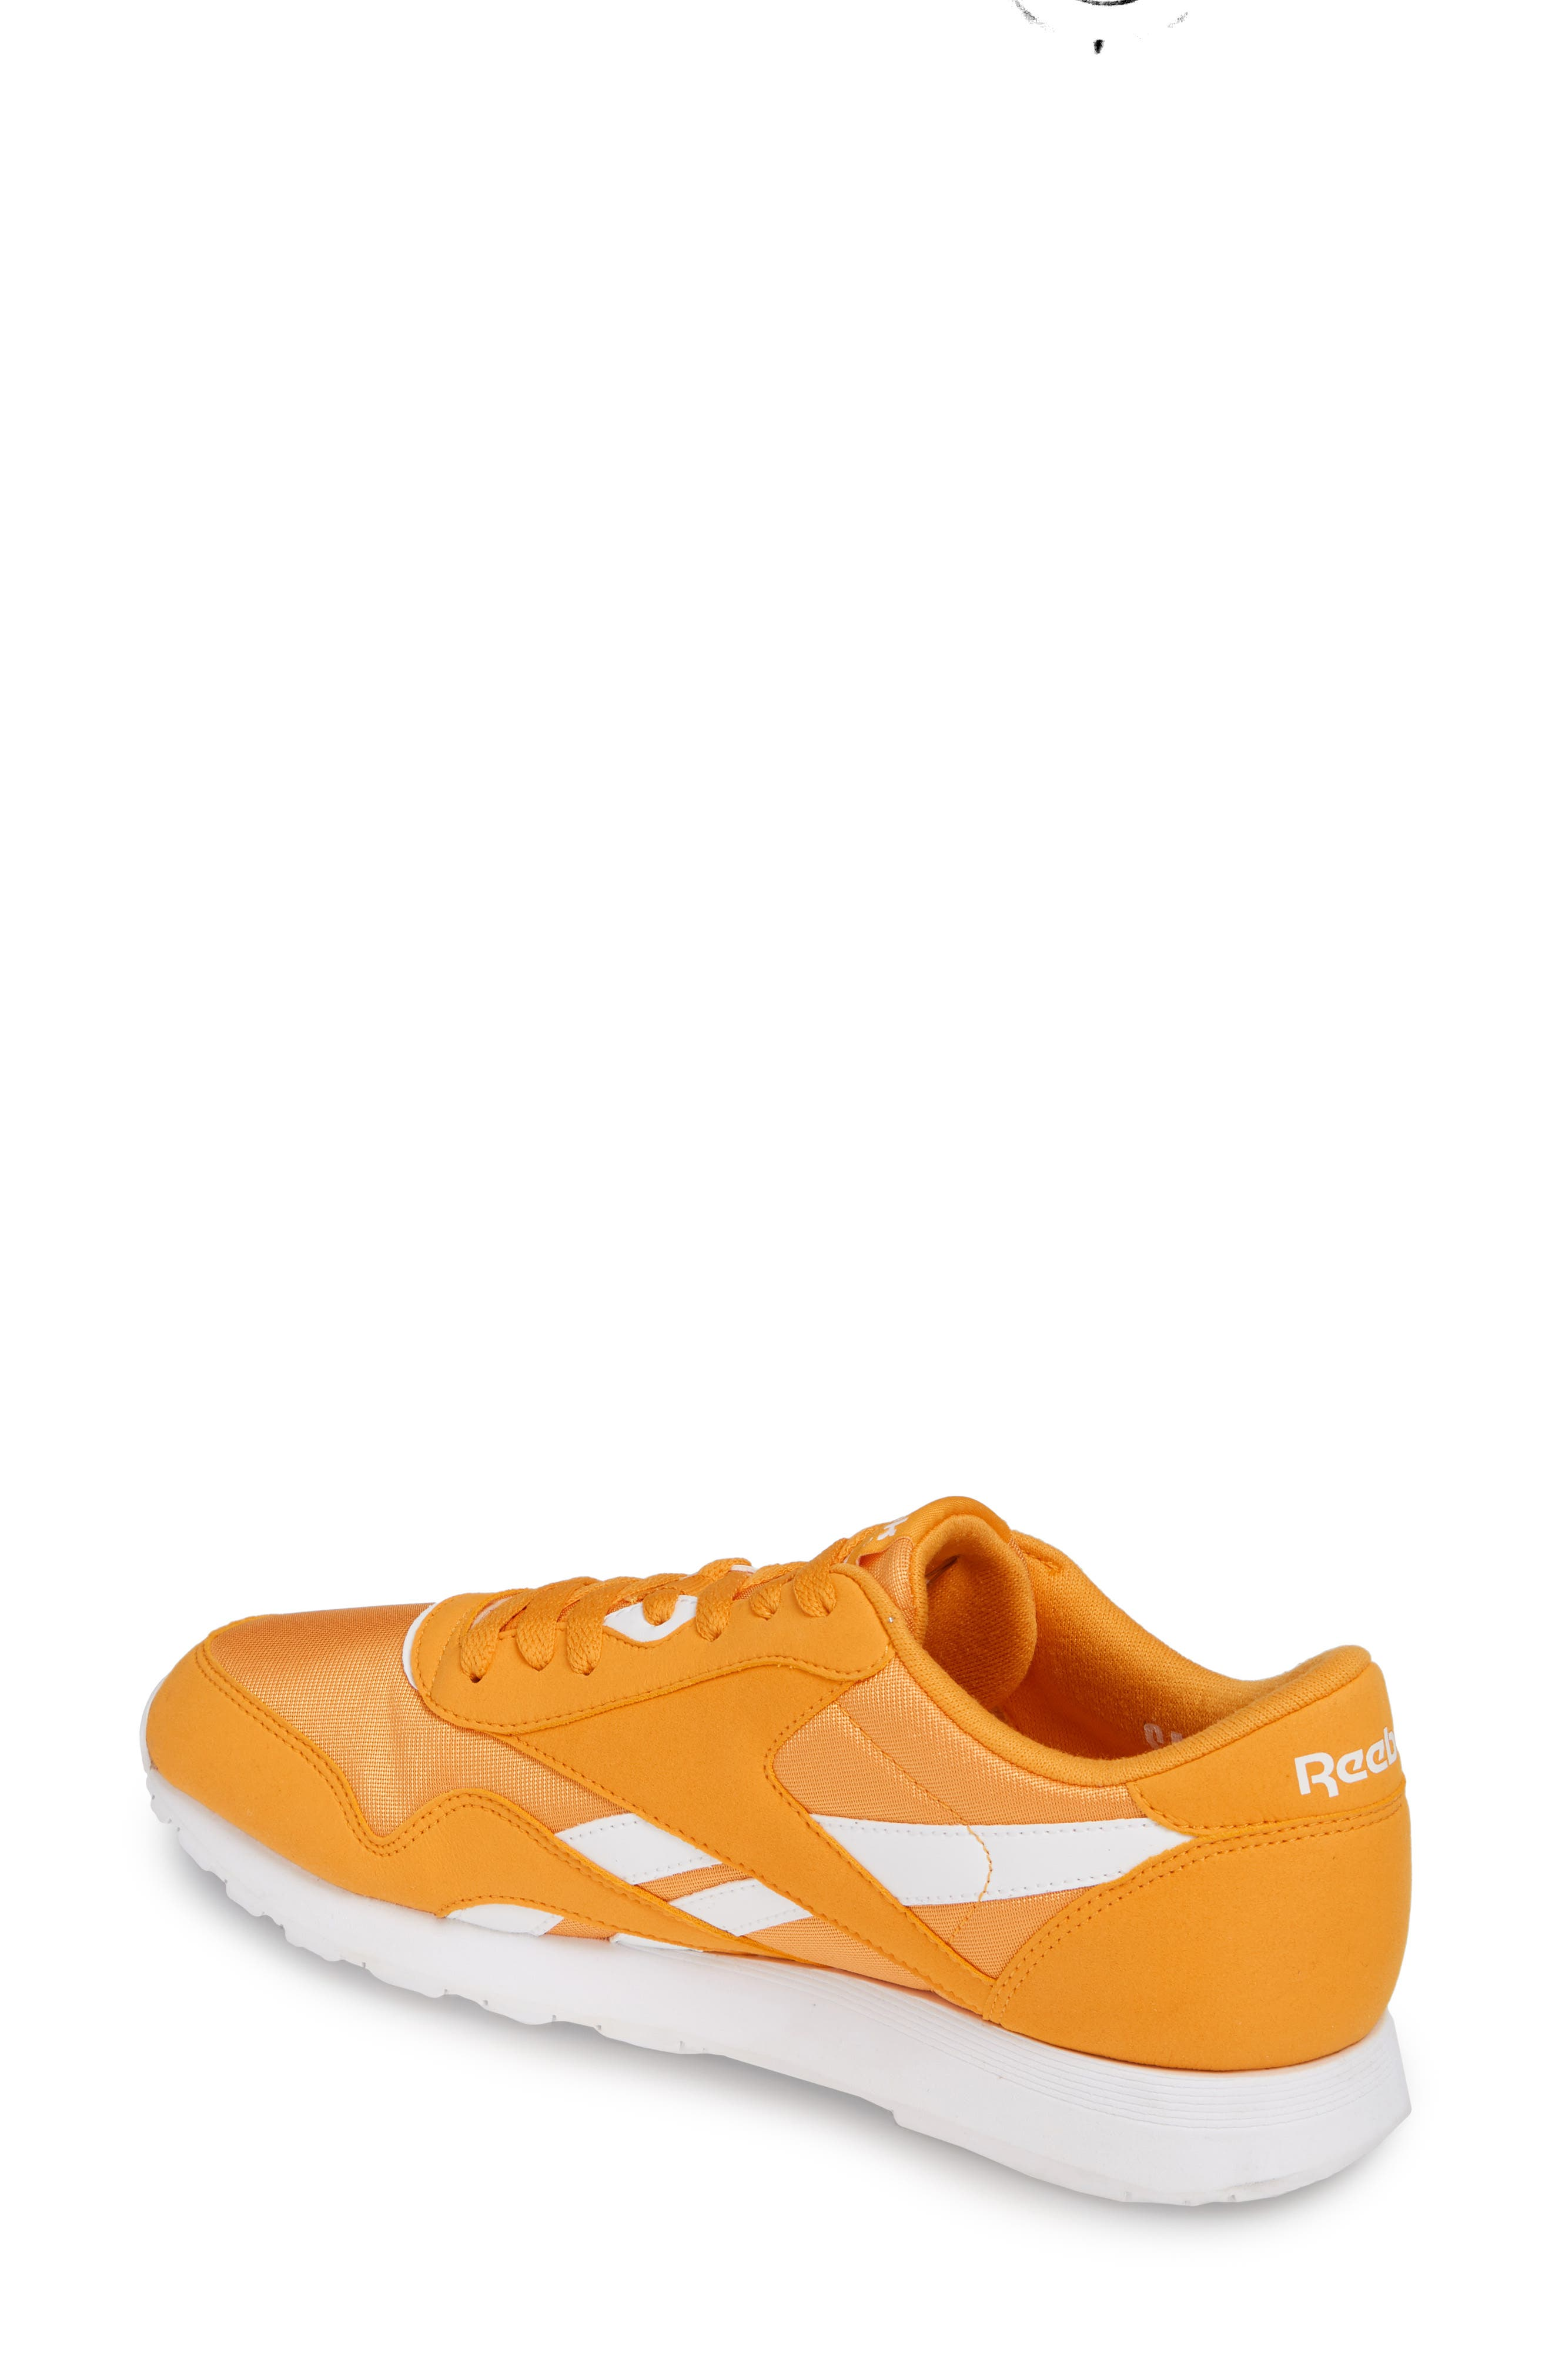 REEBOK, Classic Nylon Sneaker, Alternate thumbnail 2, color, TREK GOLD/ WHITE